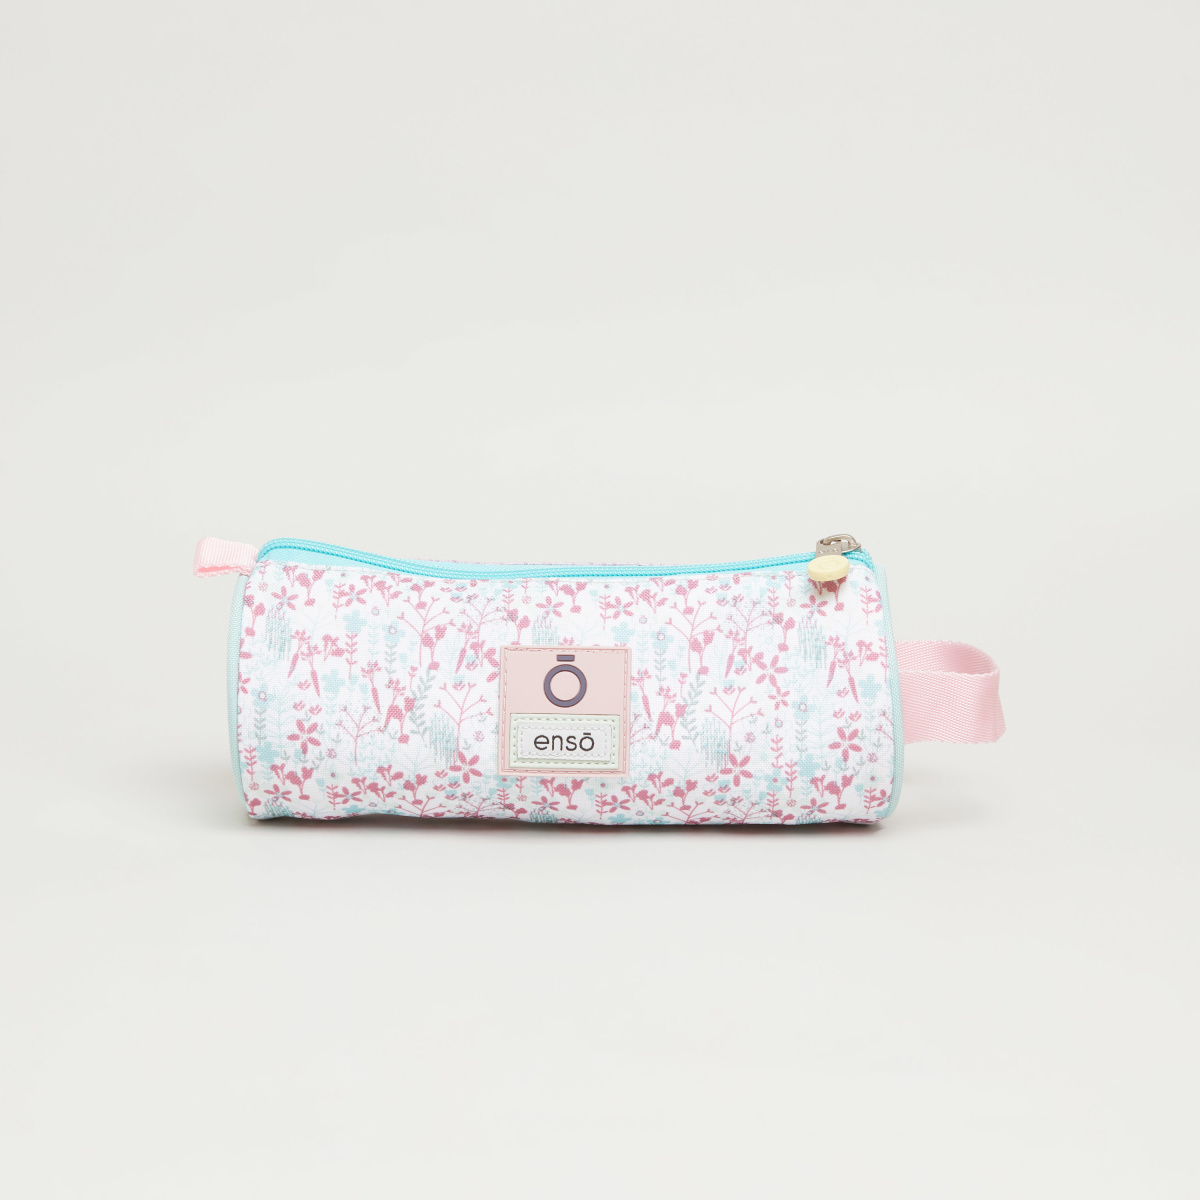 Enso Secret Garden Printed Pencil Case with Zip Closure